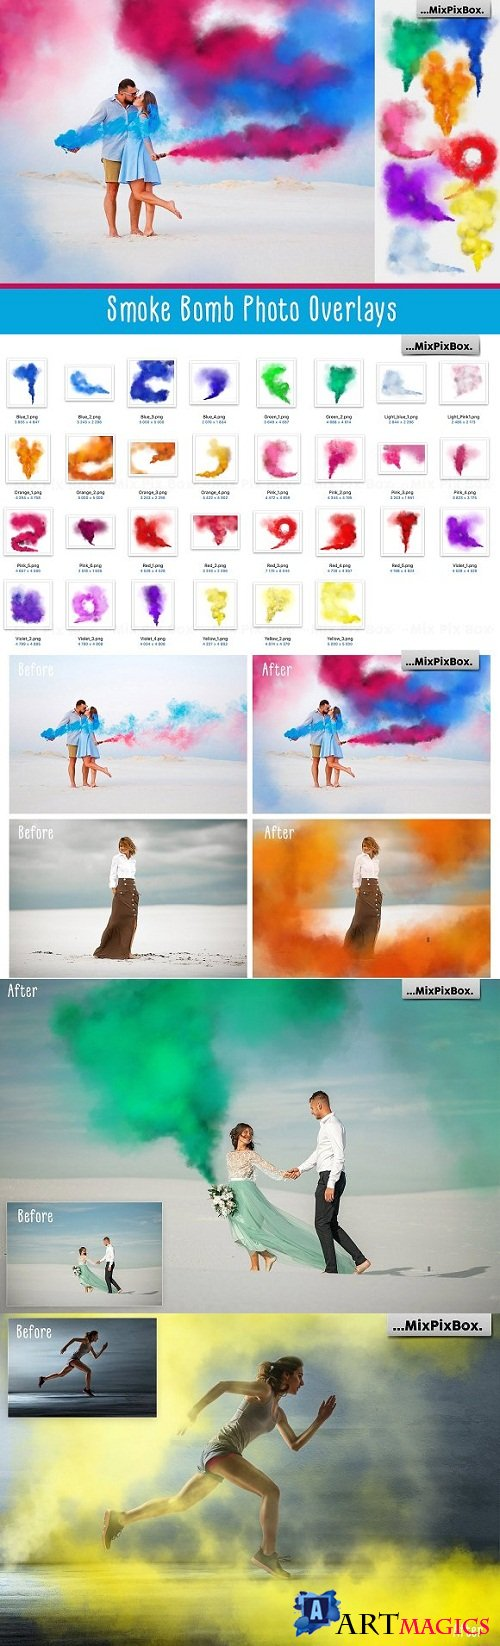 Smoke Bomb Photo Overlays 3290991